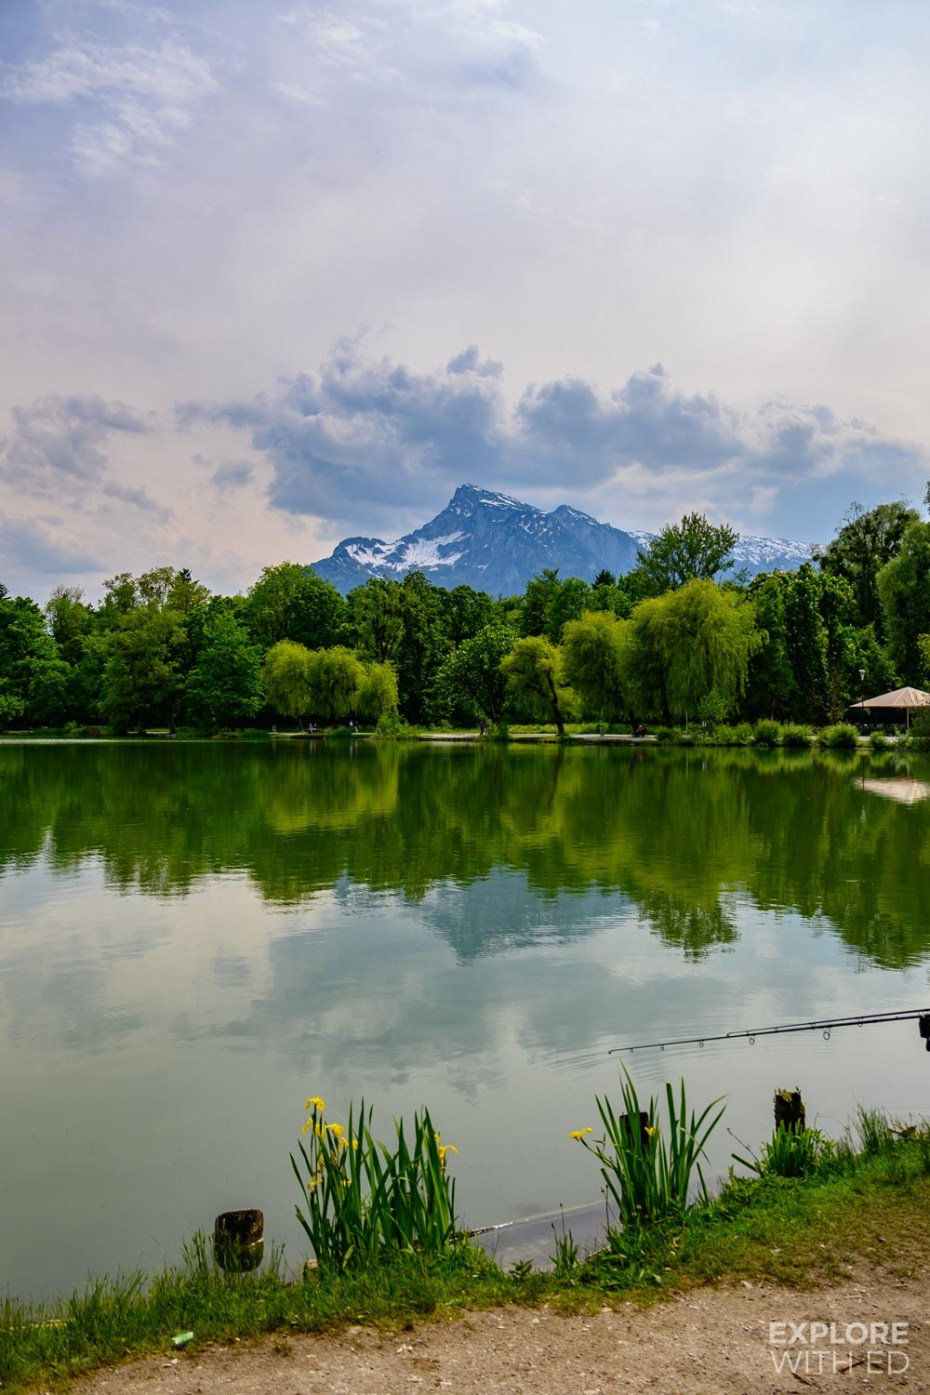 Snow capped mountains and lake at Leopoldskron, Salzburg, Austria